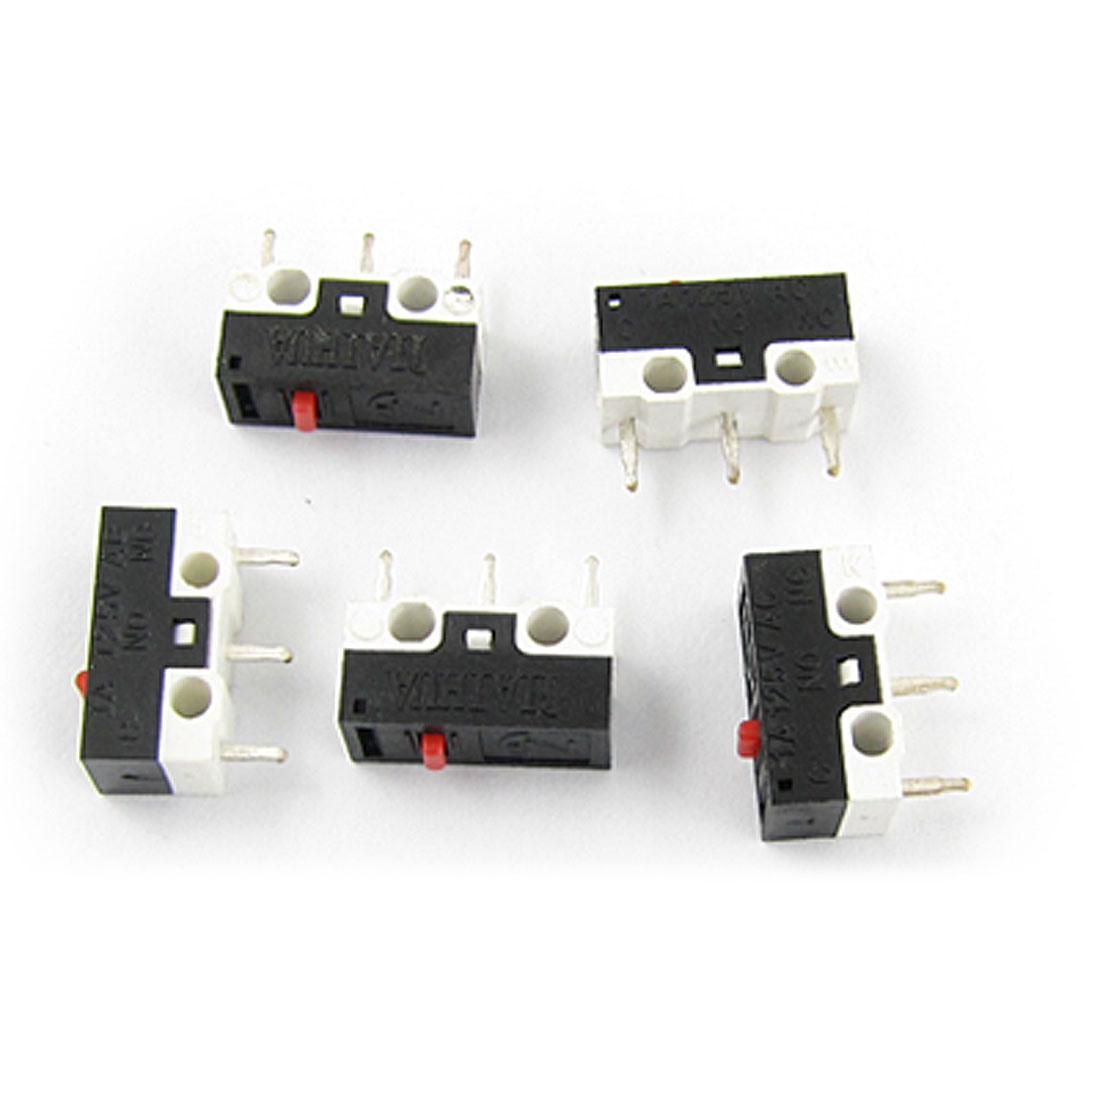 Laptop Computer Mouse Subminimature Micro Limit Switch 5 Pcs